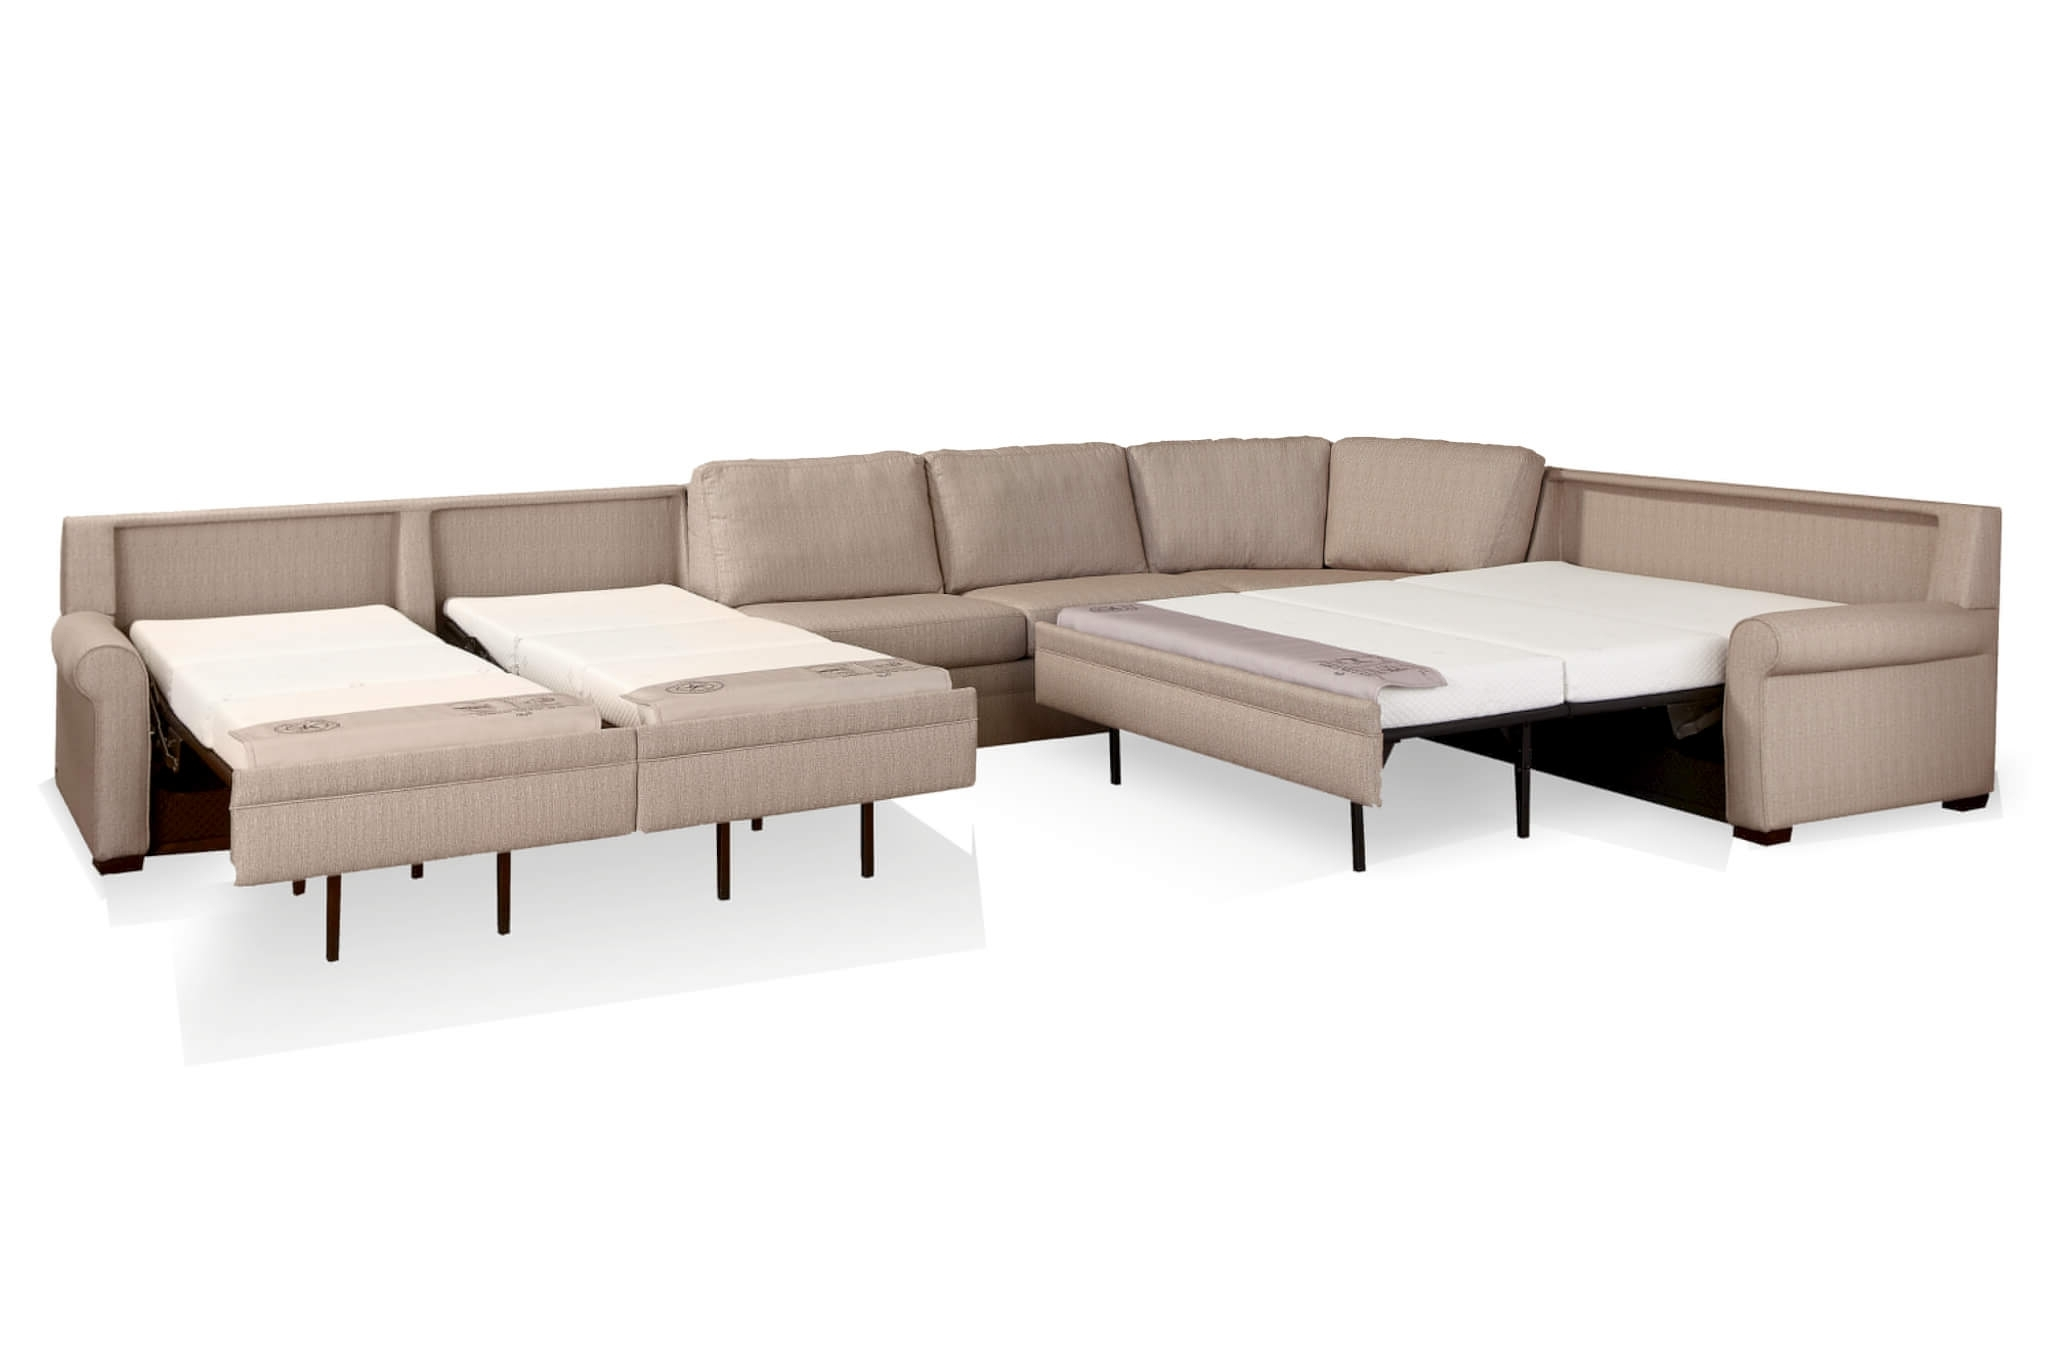 Idmi Regarding Latest Panama City Fl Sectional Sofas (View 8 of 20)